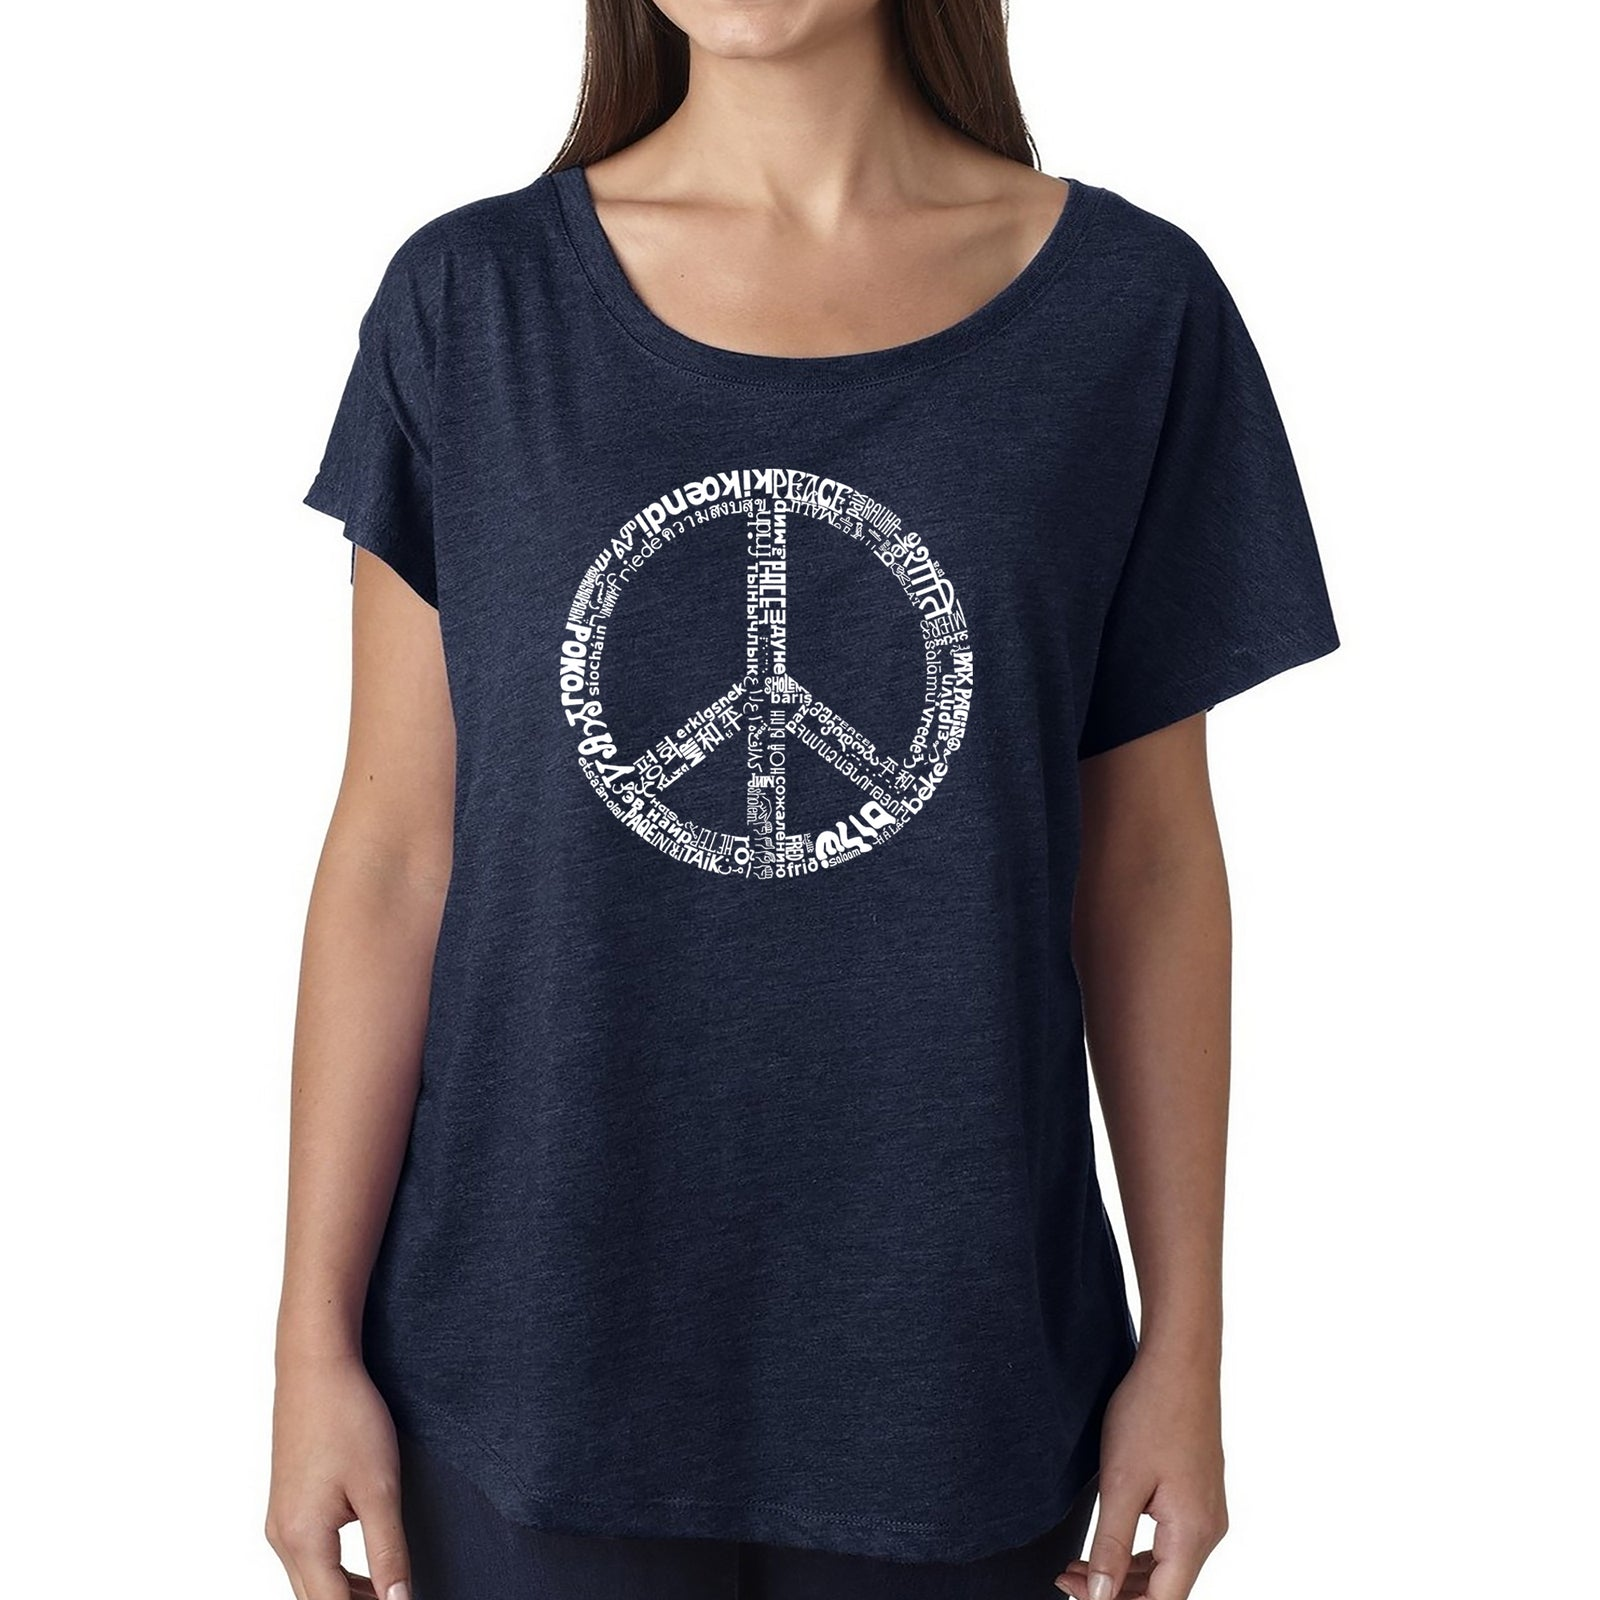 Women's Loose Fit Dolman Cut Word Art Shirt - THE WORD PEACE IN 77 LANGUAGES